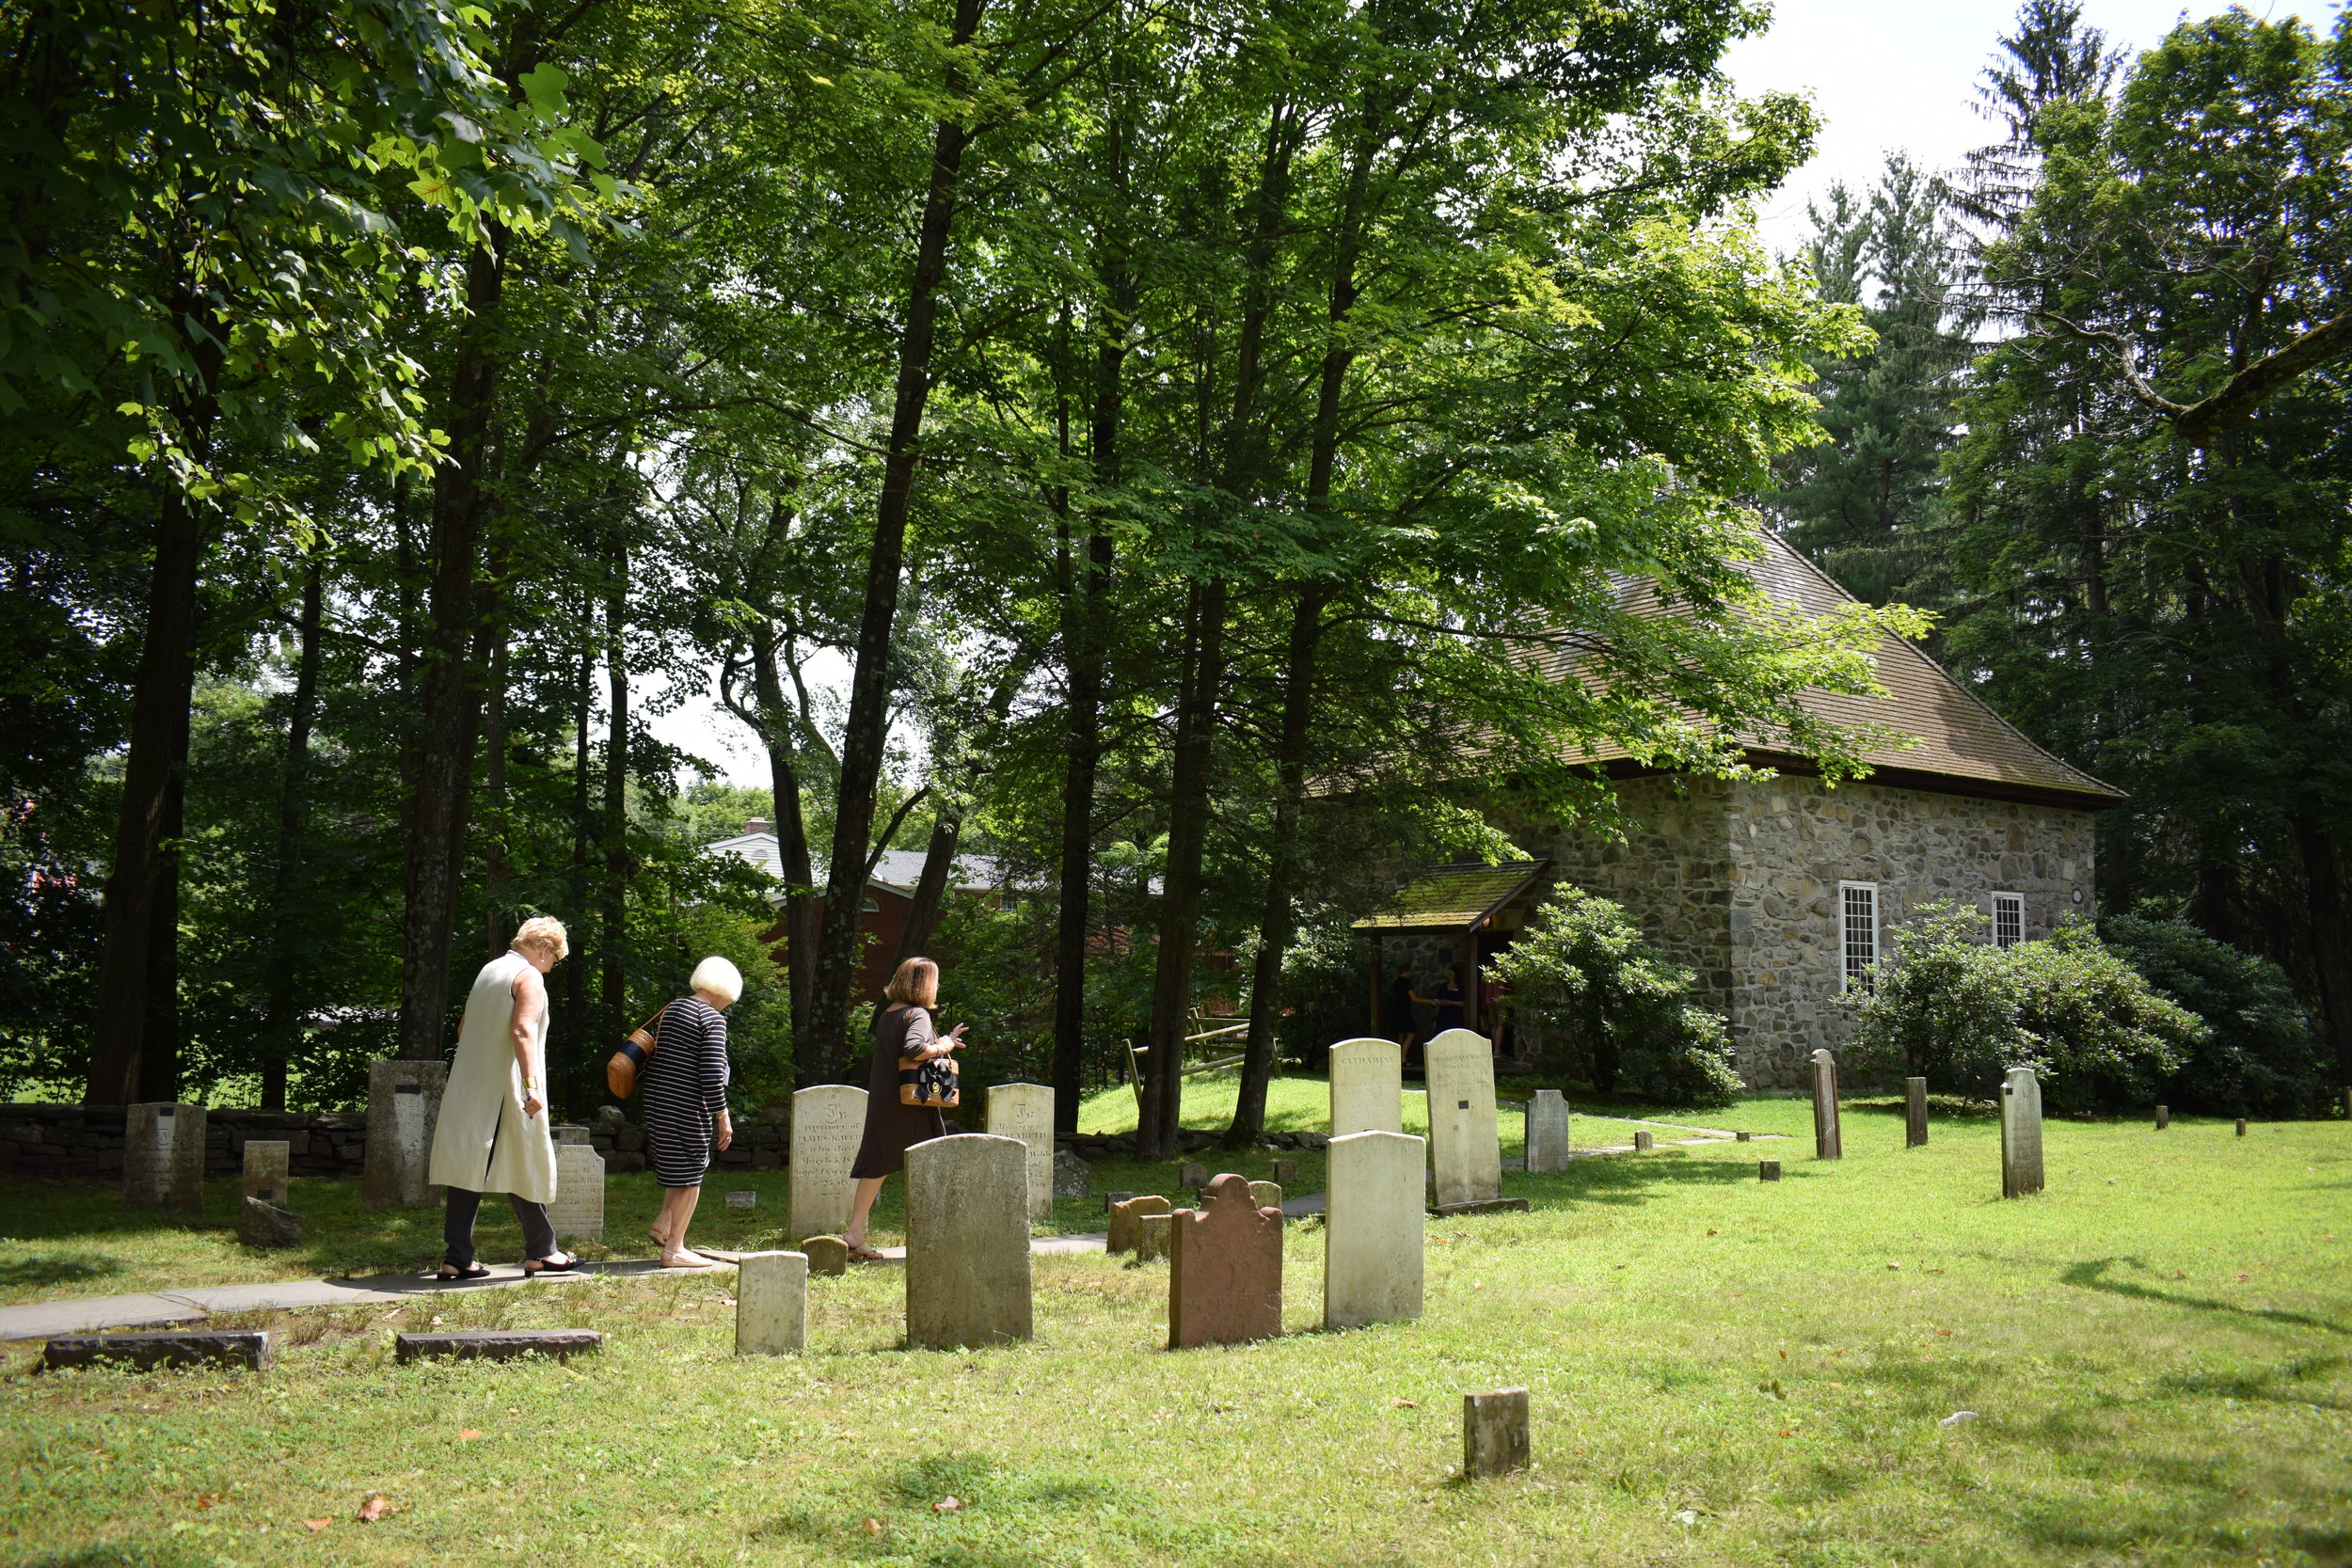 Guests make their way to the Crispell Memorial French Church